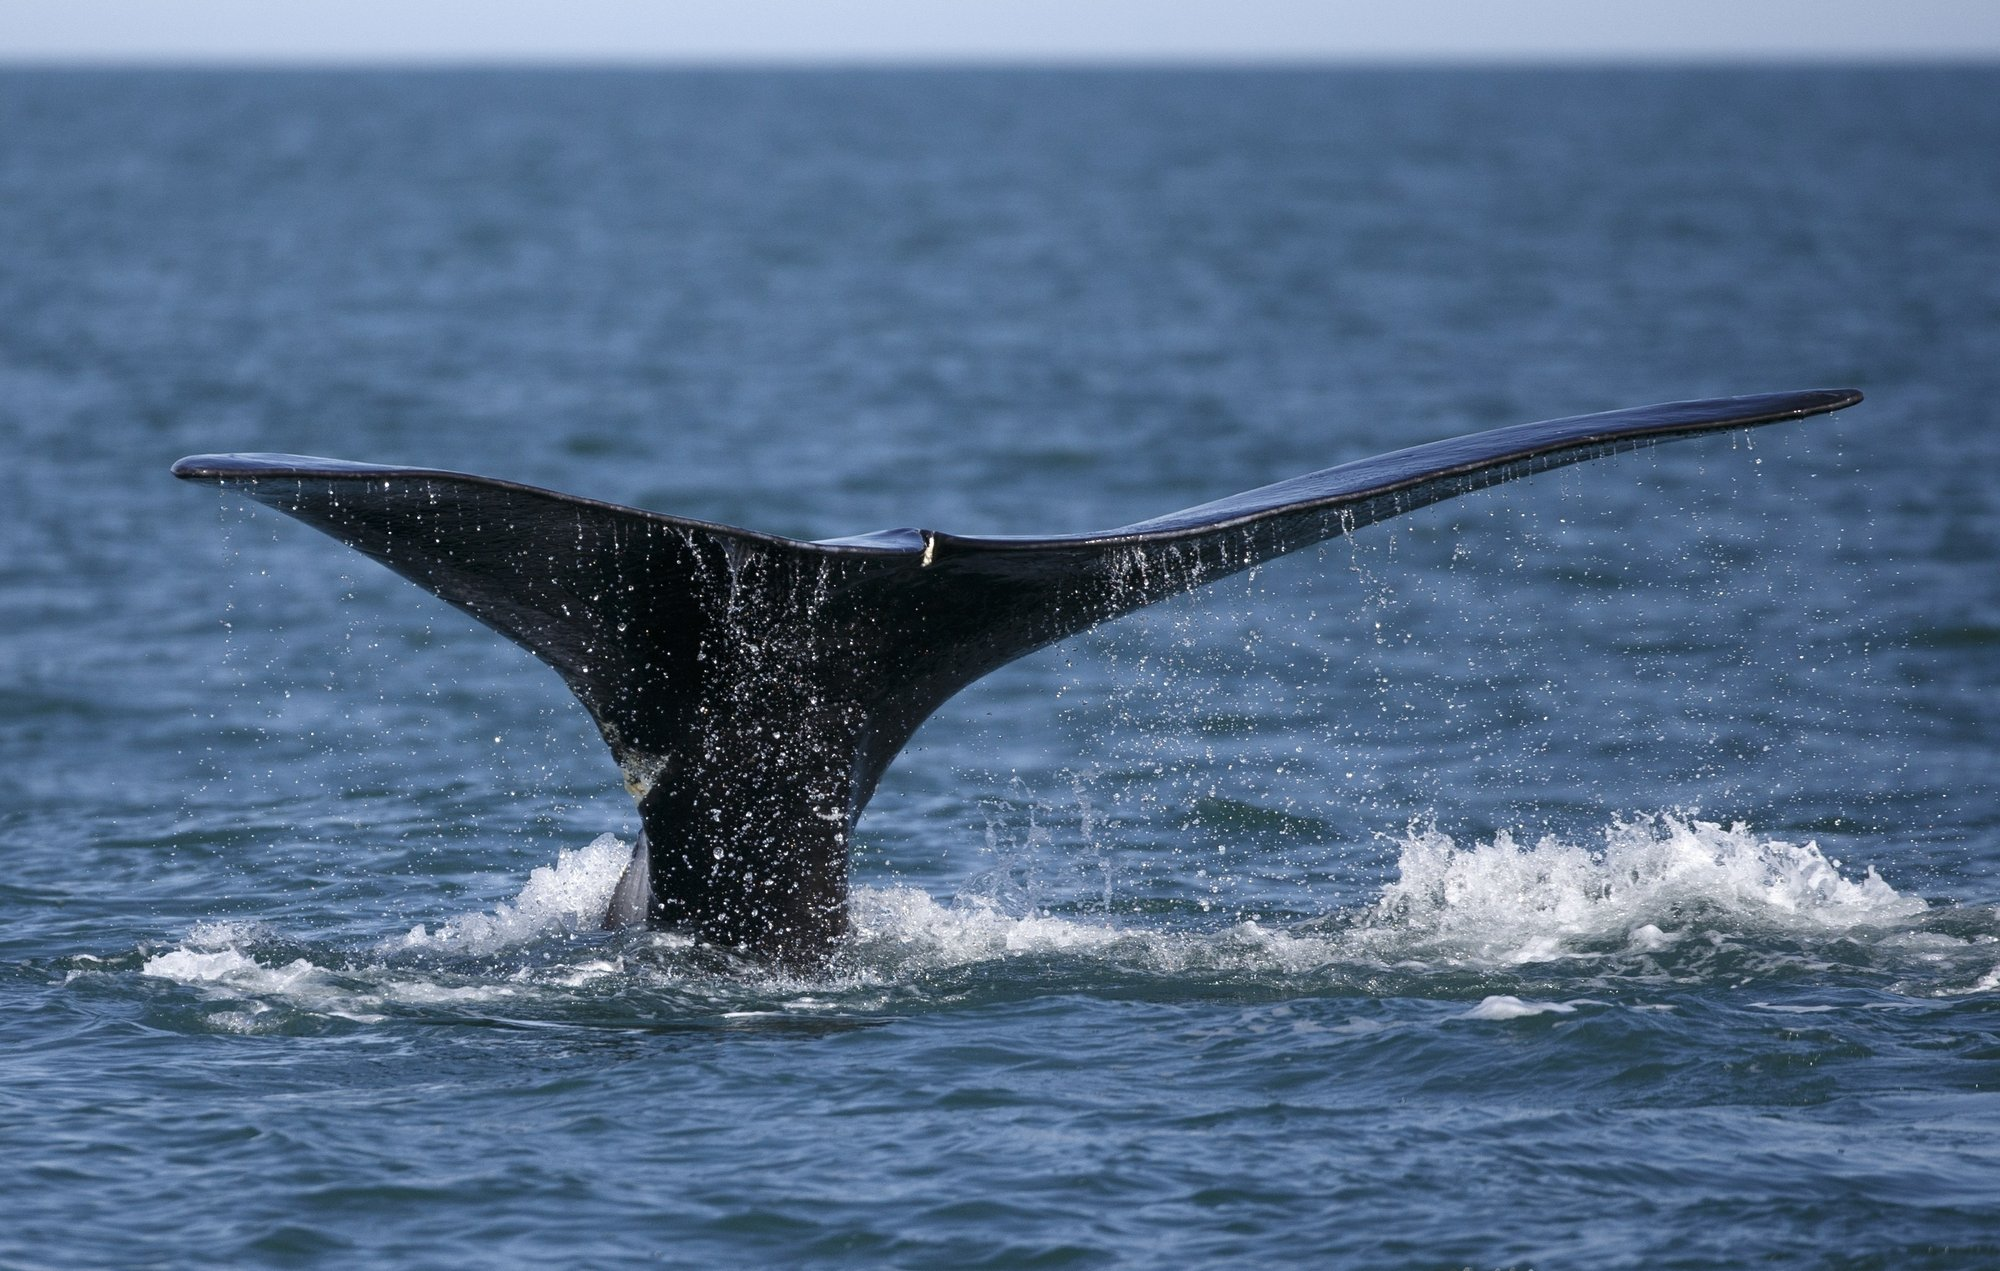 Protection of rare whale, fishing rules on agenda this week